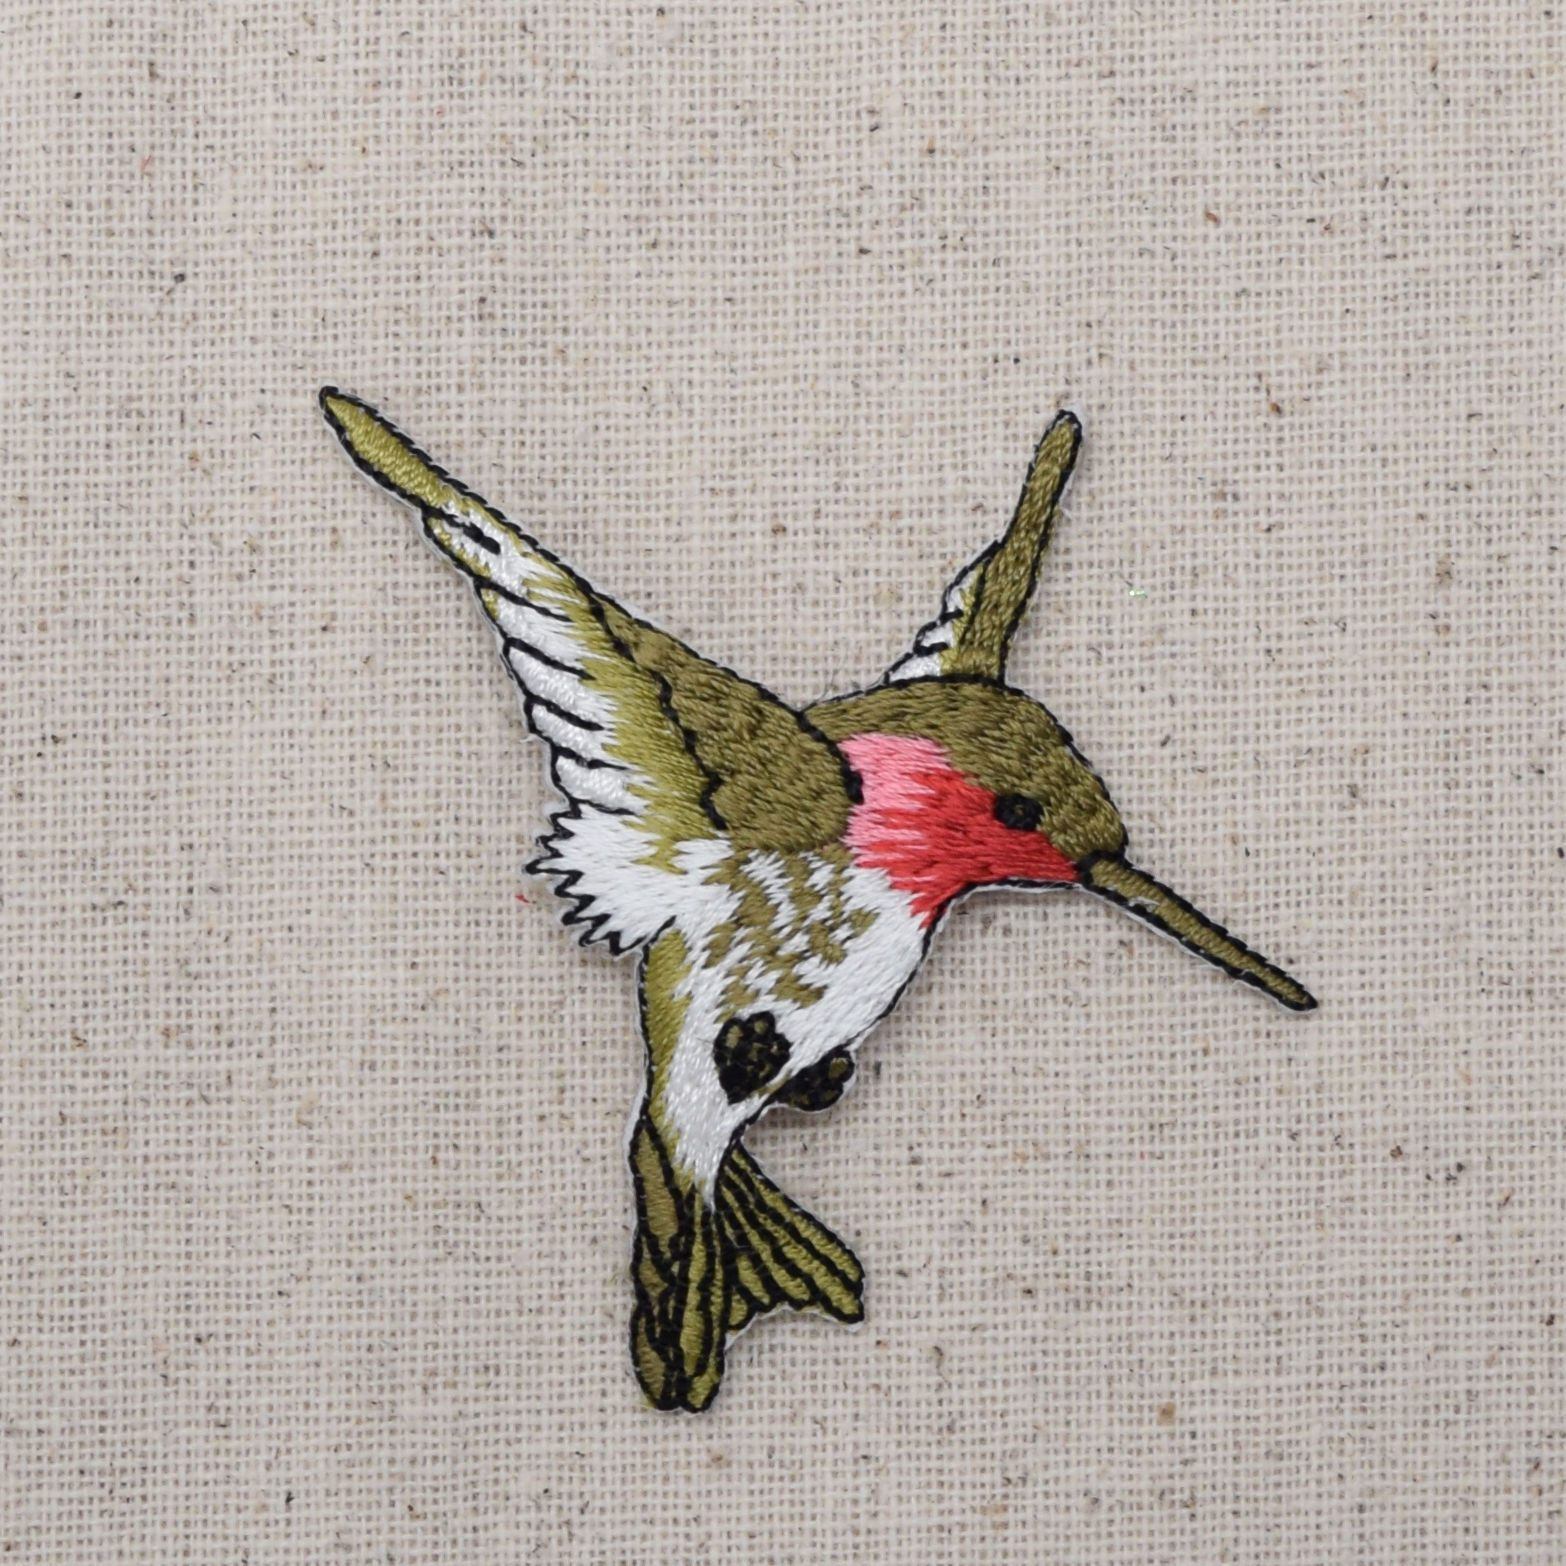 Iron On Embroidered Applique Patch Ruby Red Throat Hummingbird LARGE                                                                                                                                                                                 More